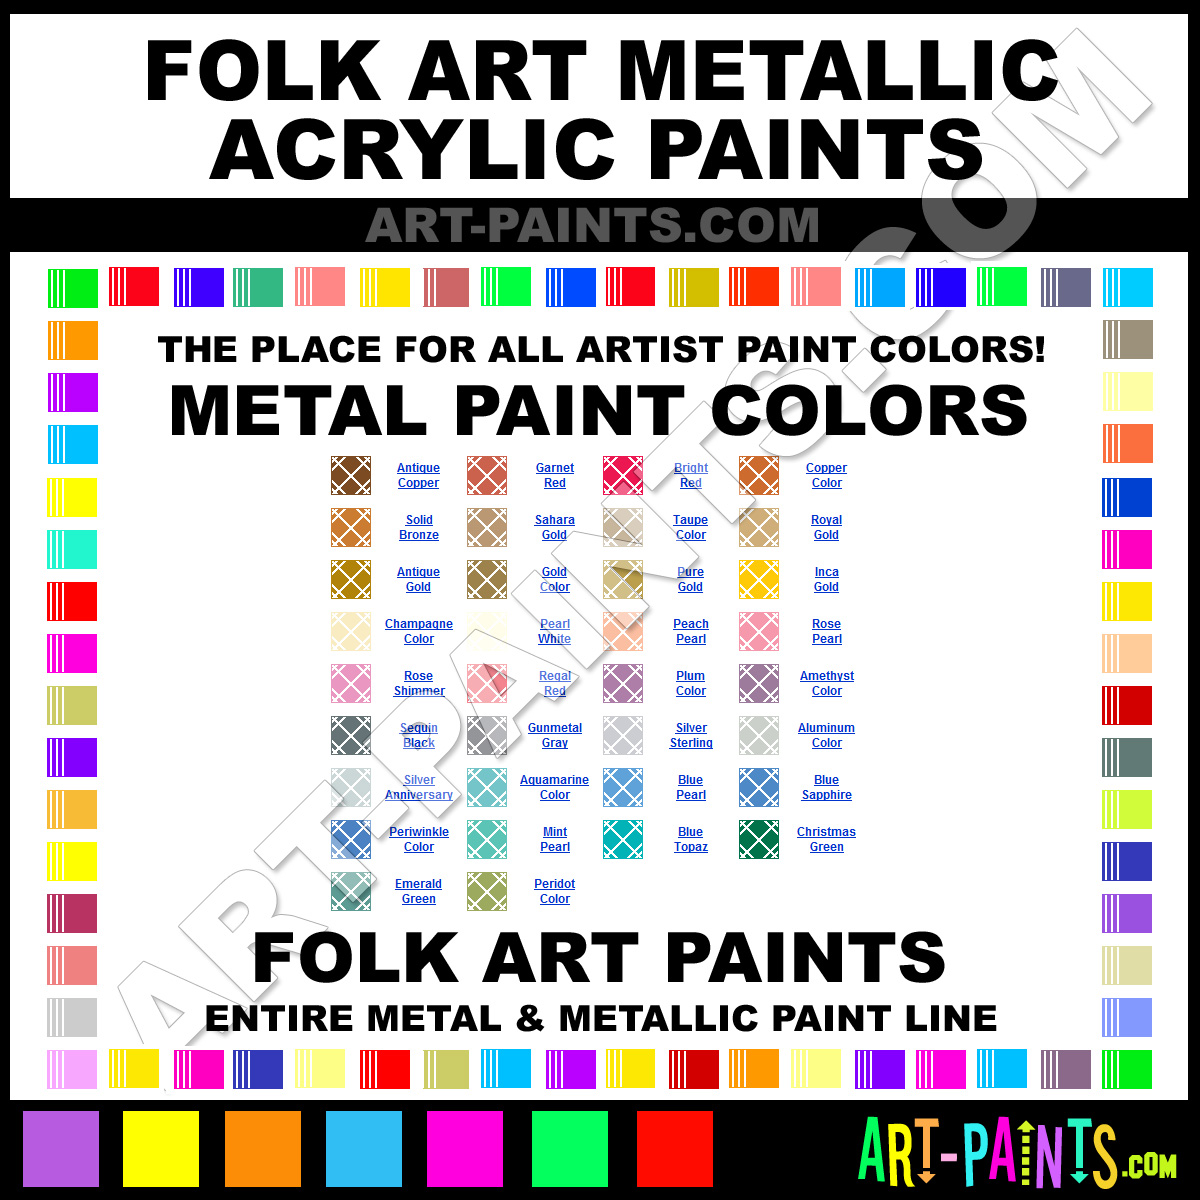 Folk Art Metallic Acrylic Metal Paint Colors Metallic